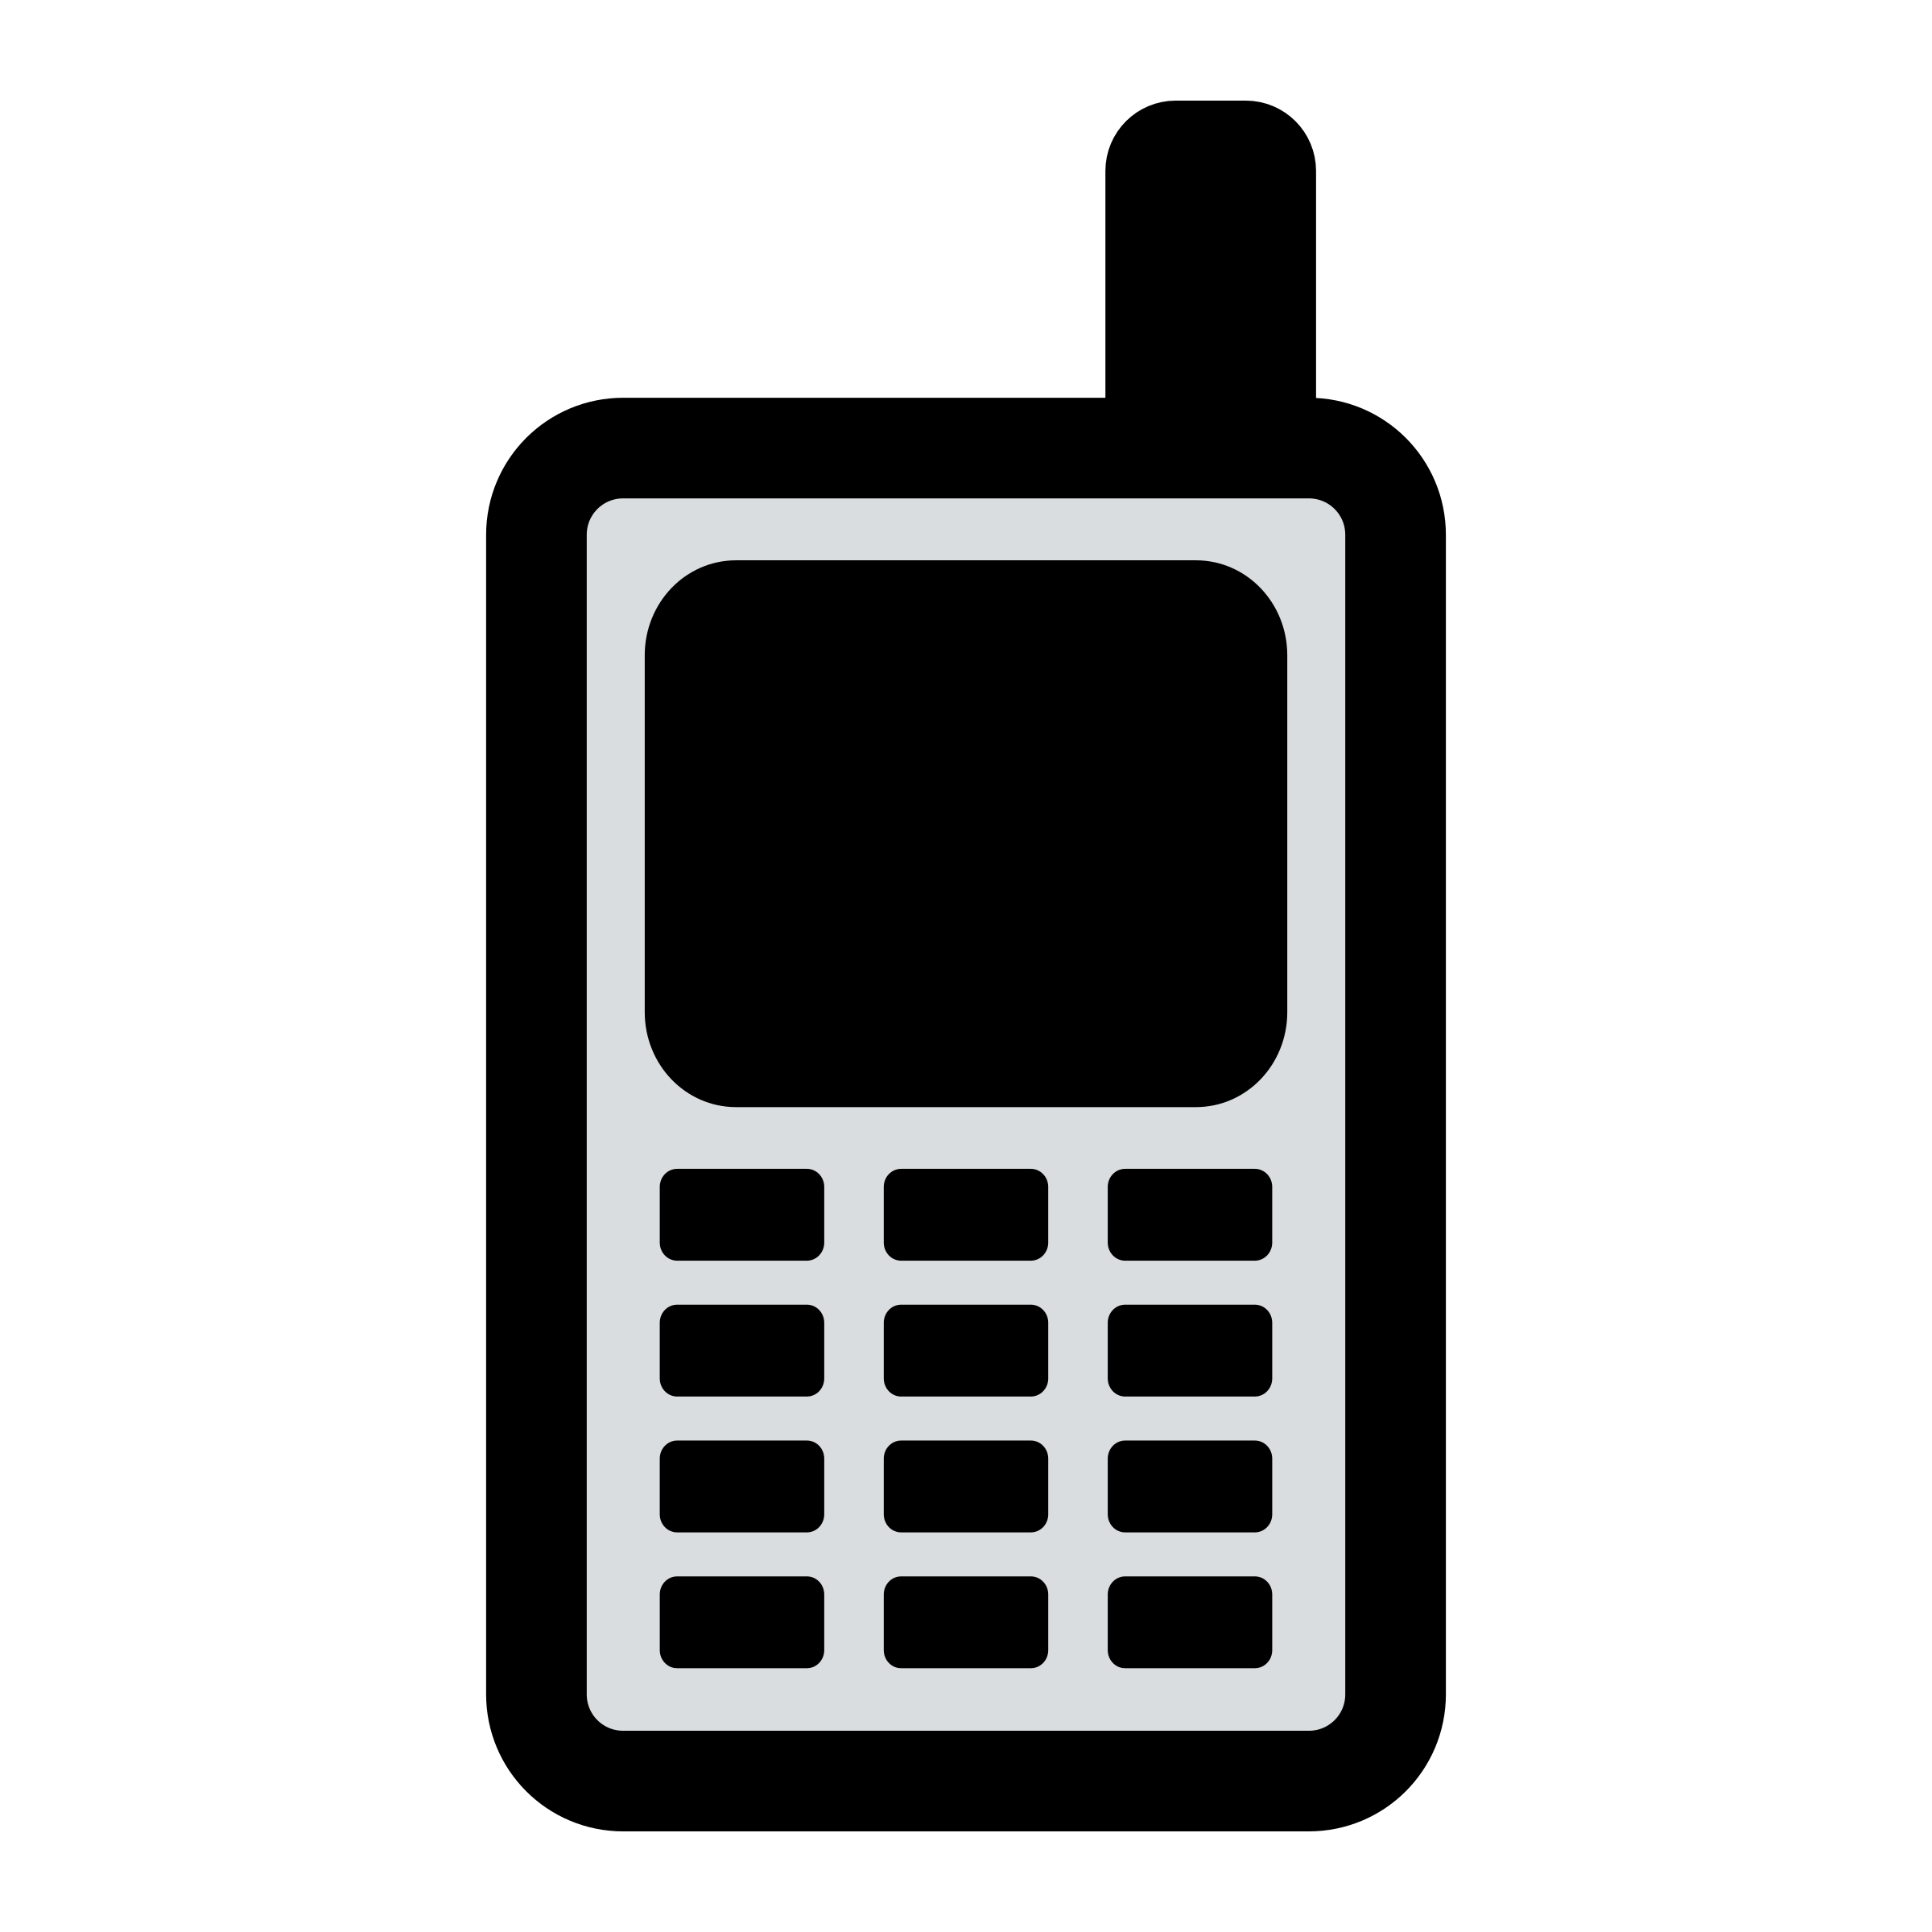 Phone clipart mobile icon. Primary yahoo big image